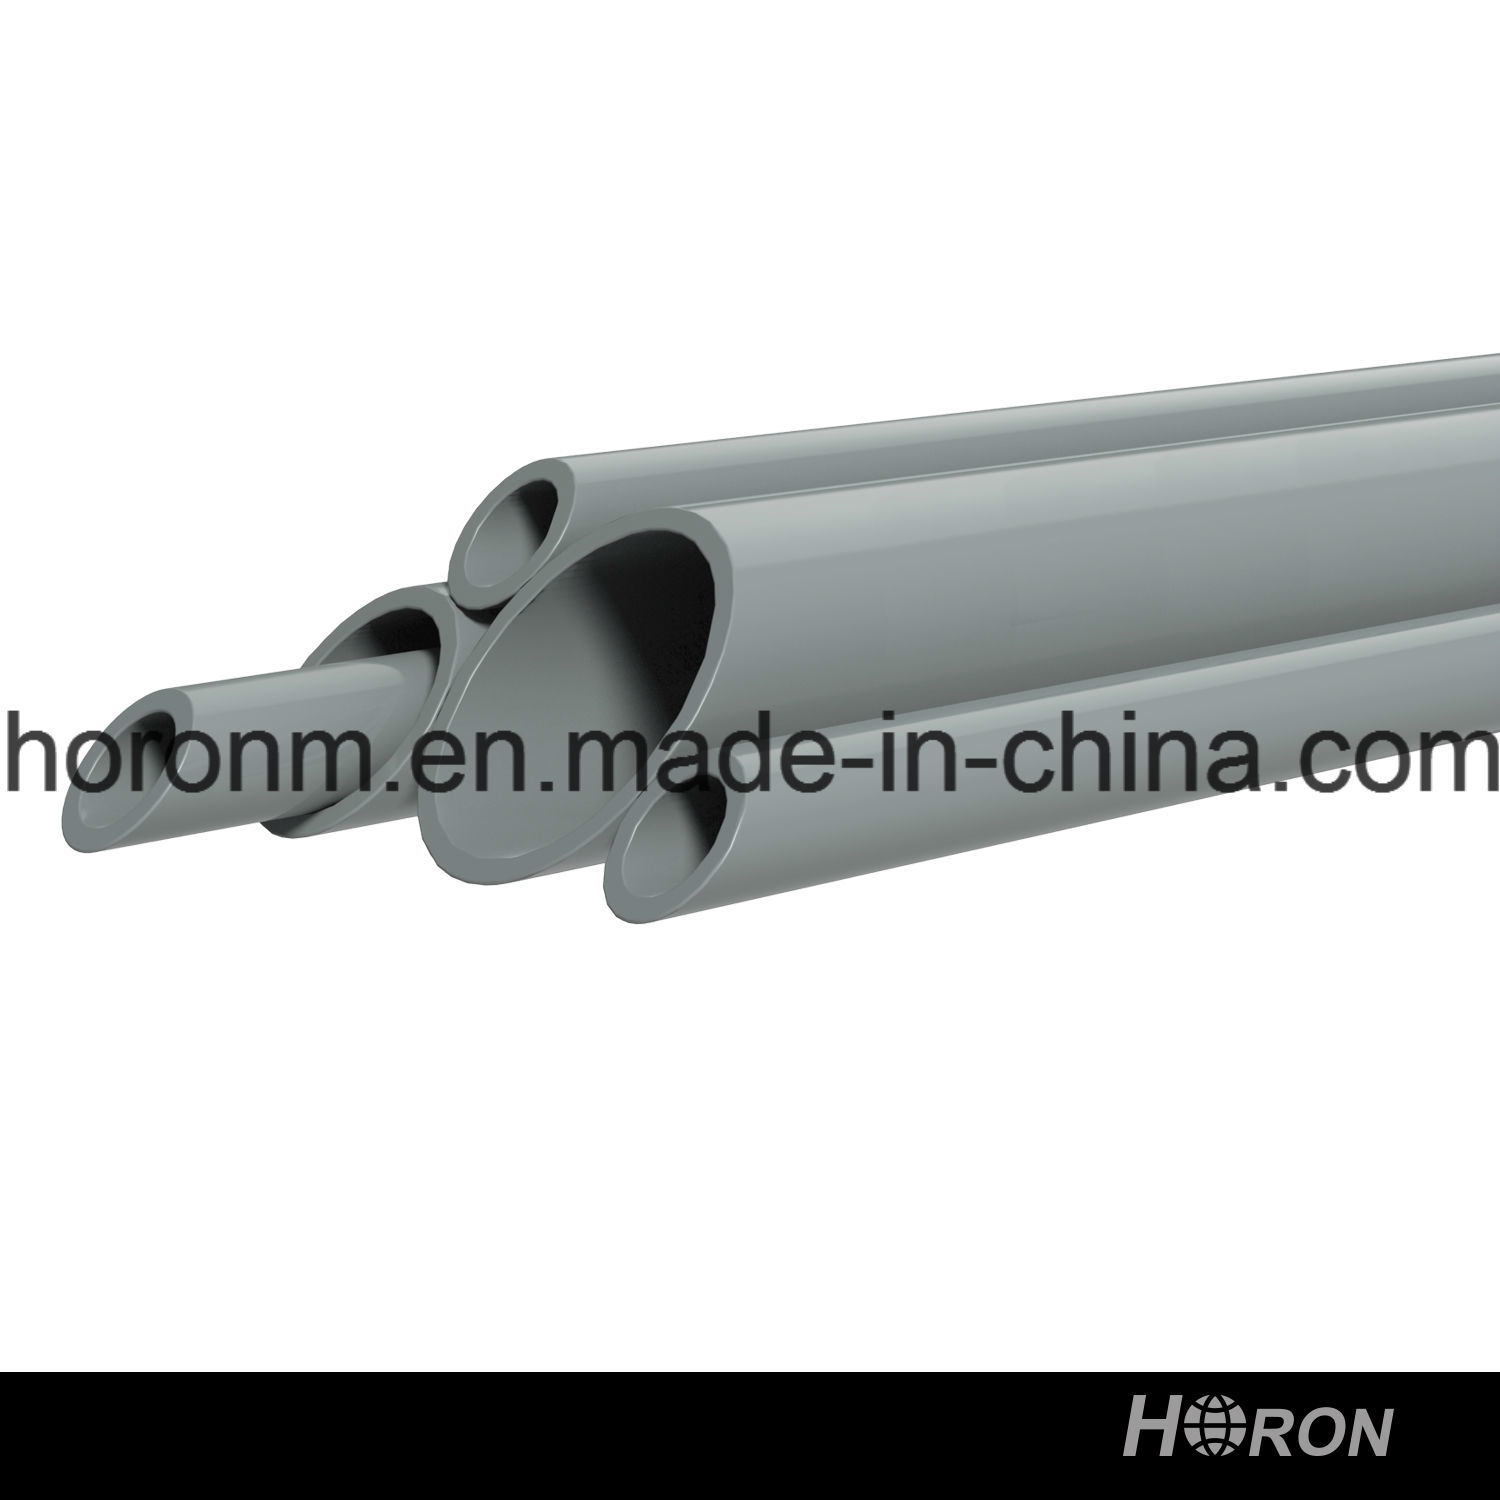 Water Pipe-CPVC Pipe-PVC Pipe-CPVC Tube-CPVC Sch80 Pipe-Pipe